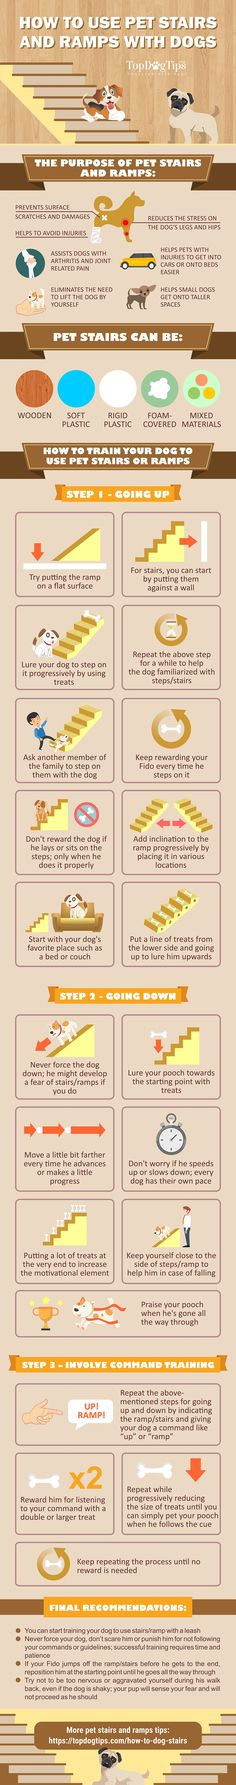 How to Train Dogs to Use Pet Stairs and Ramps [Infographic]